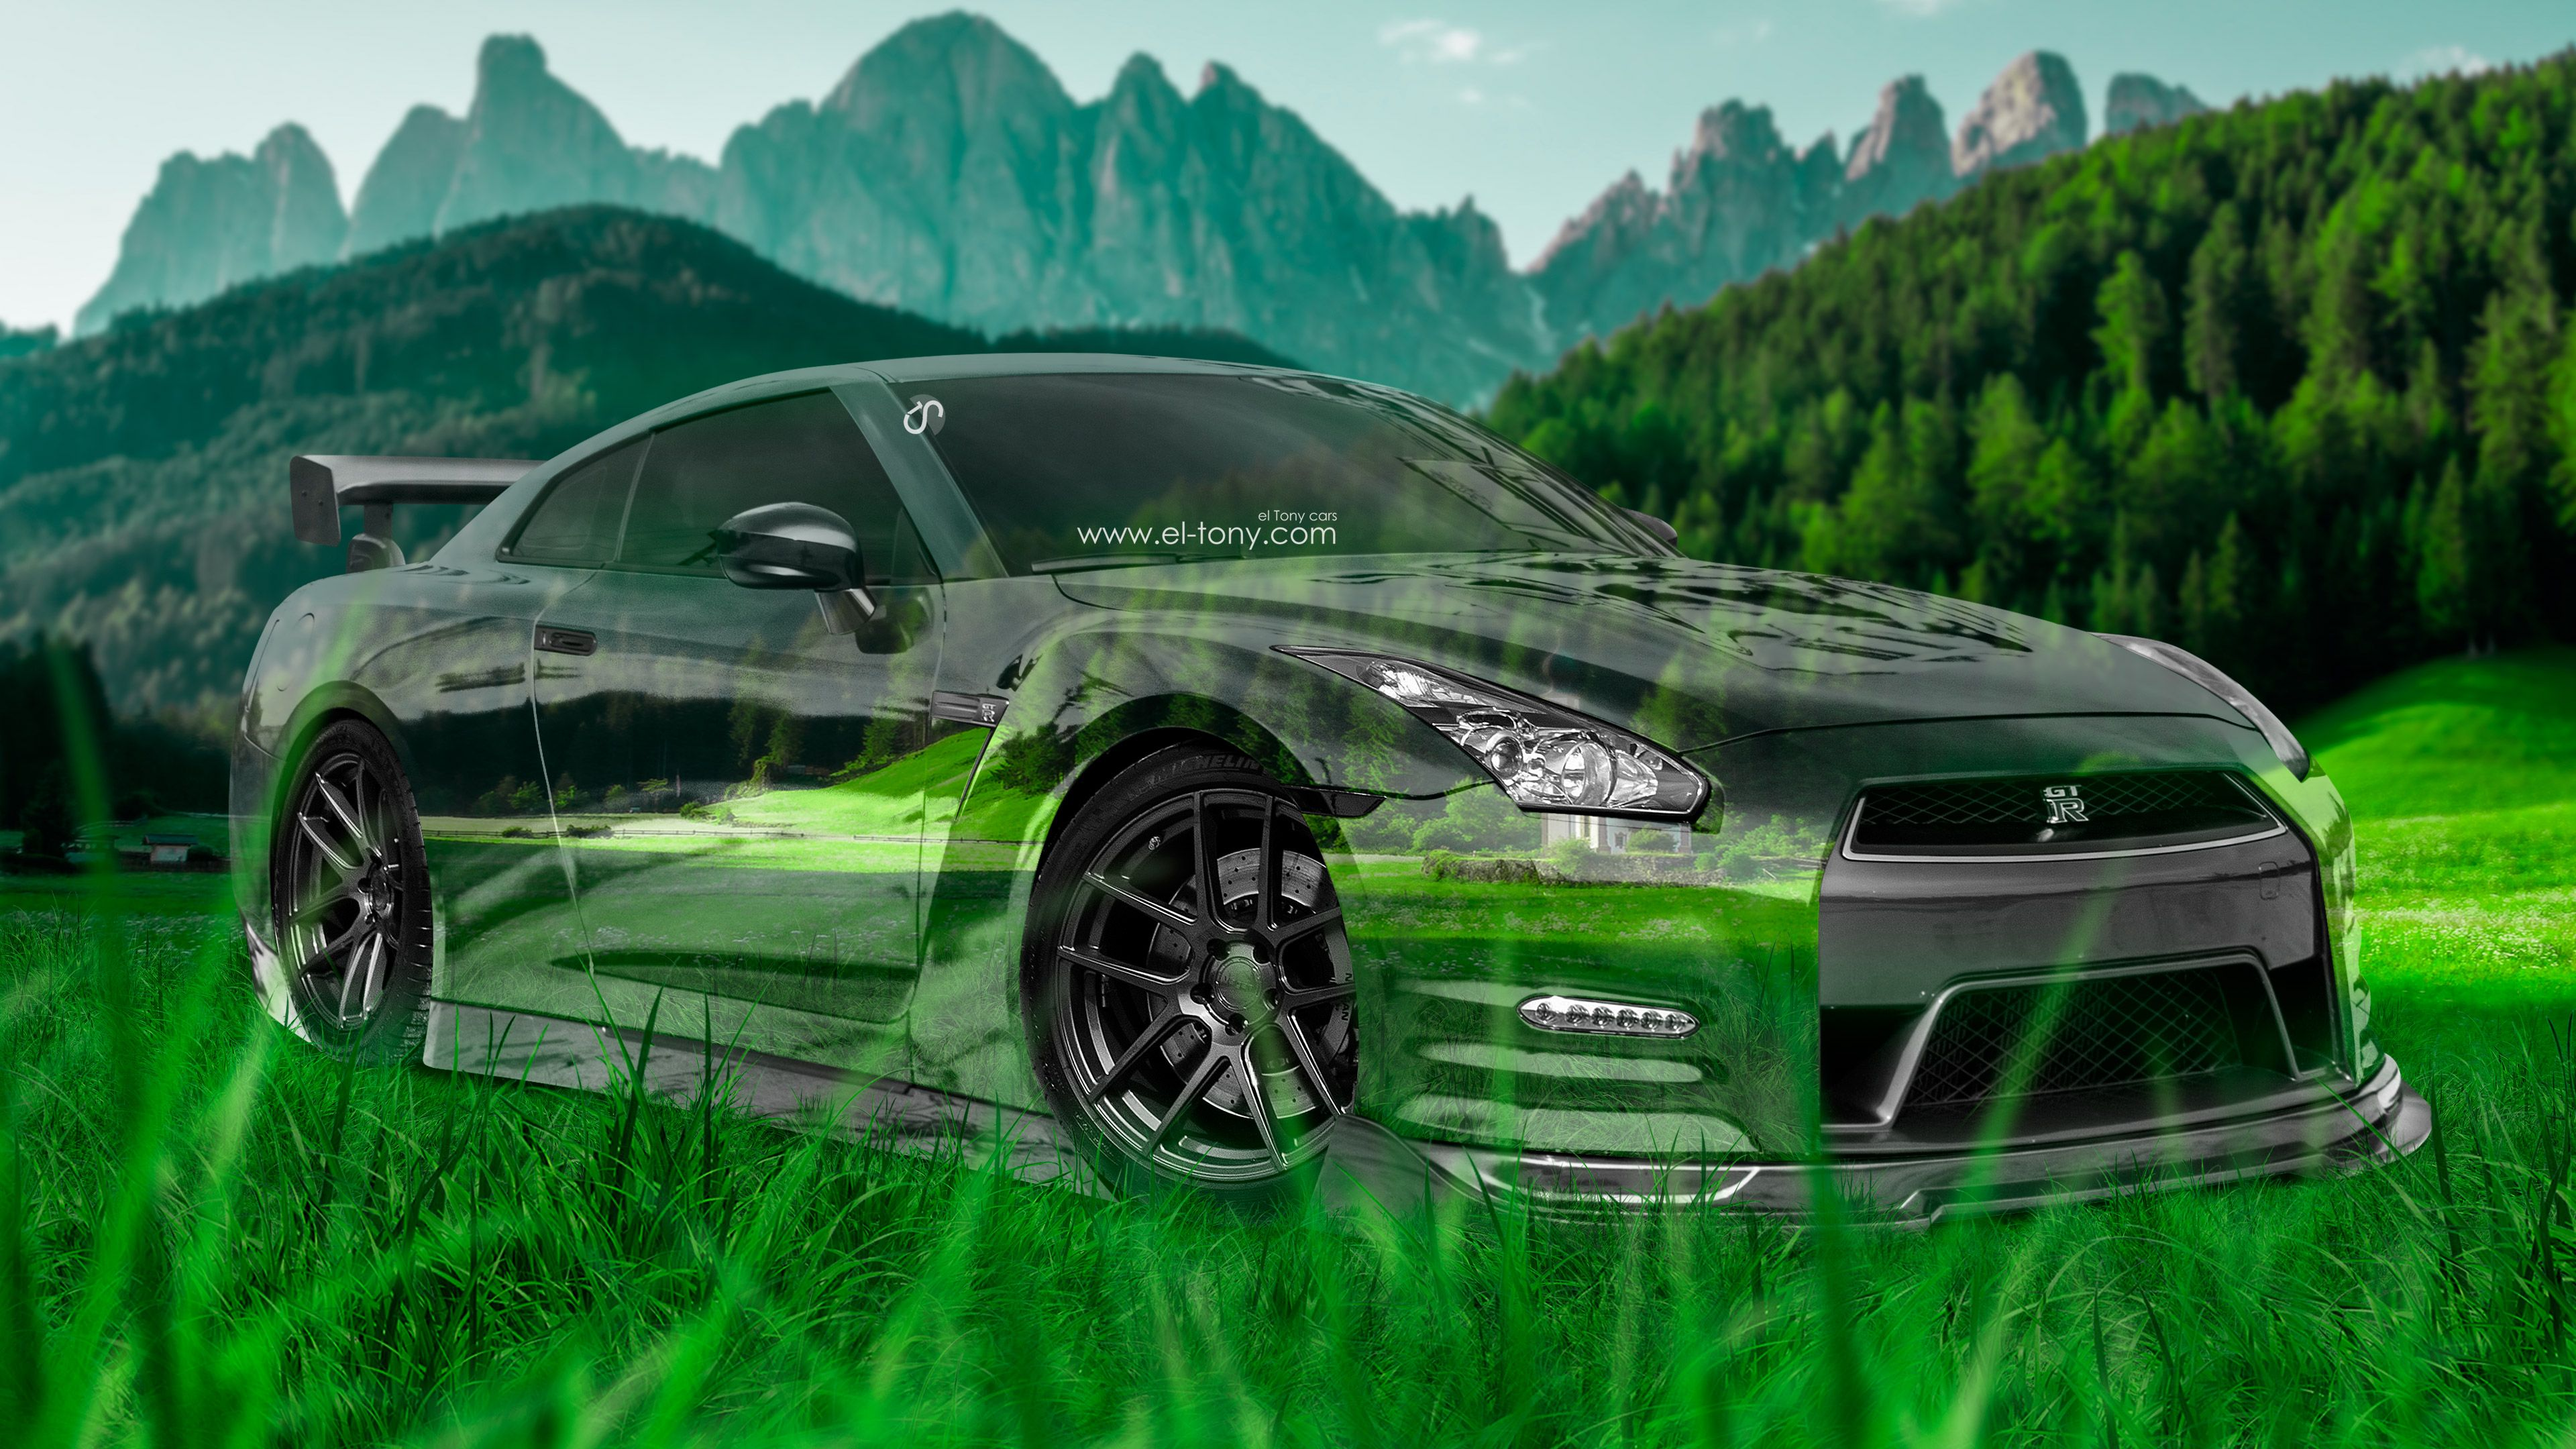 Nissan GTR R35 JDM 3D Crystal Nature Car